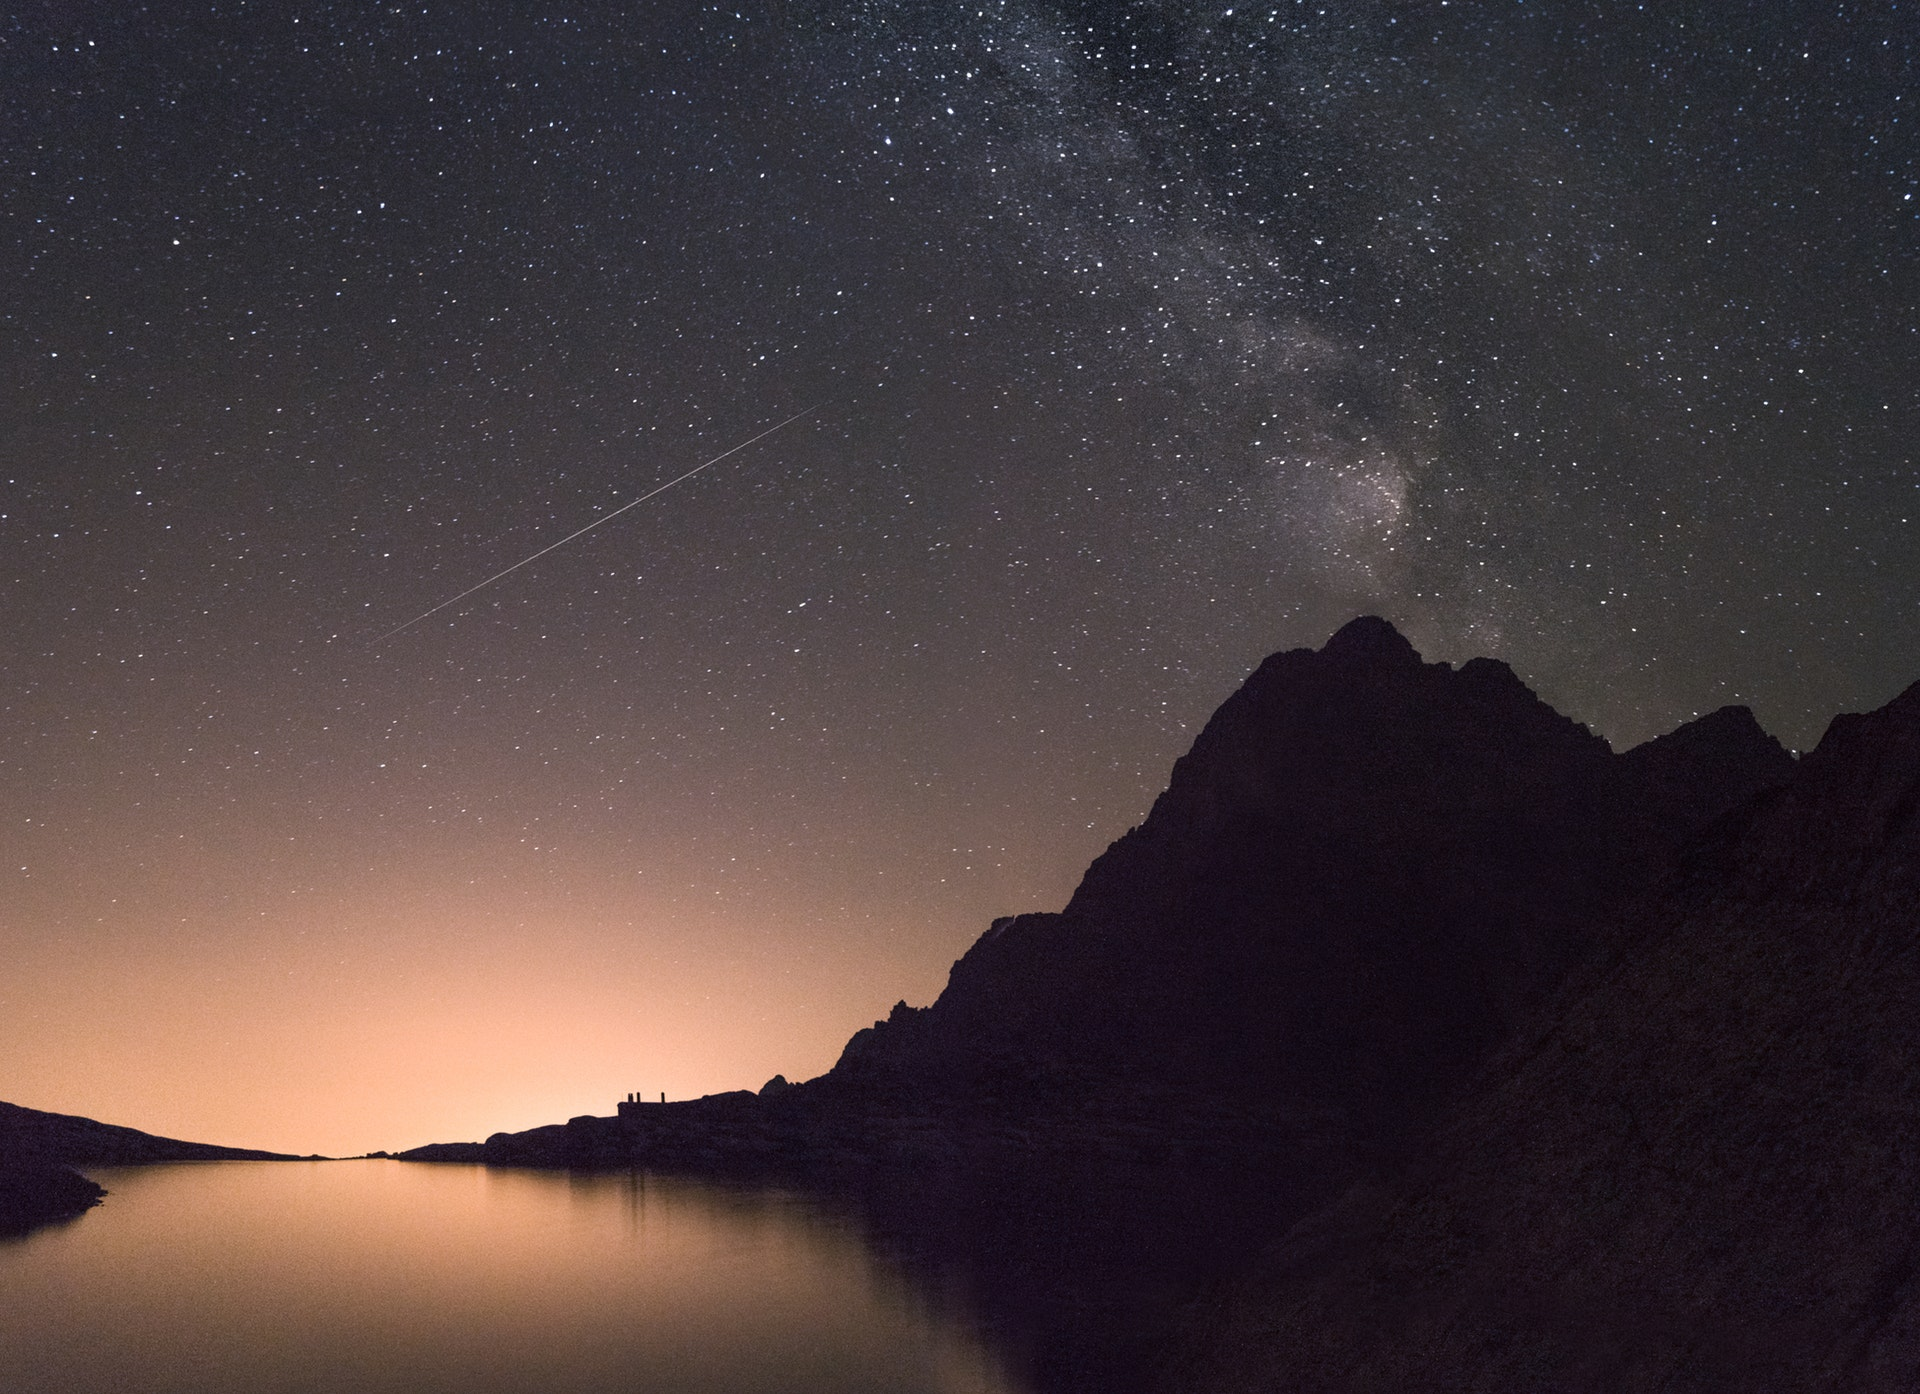 Going Through This Exercise Will Land You Amazing Images of the Night Sky | Light Stalking